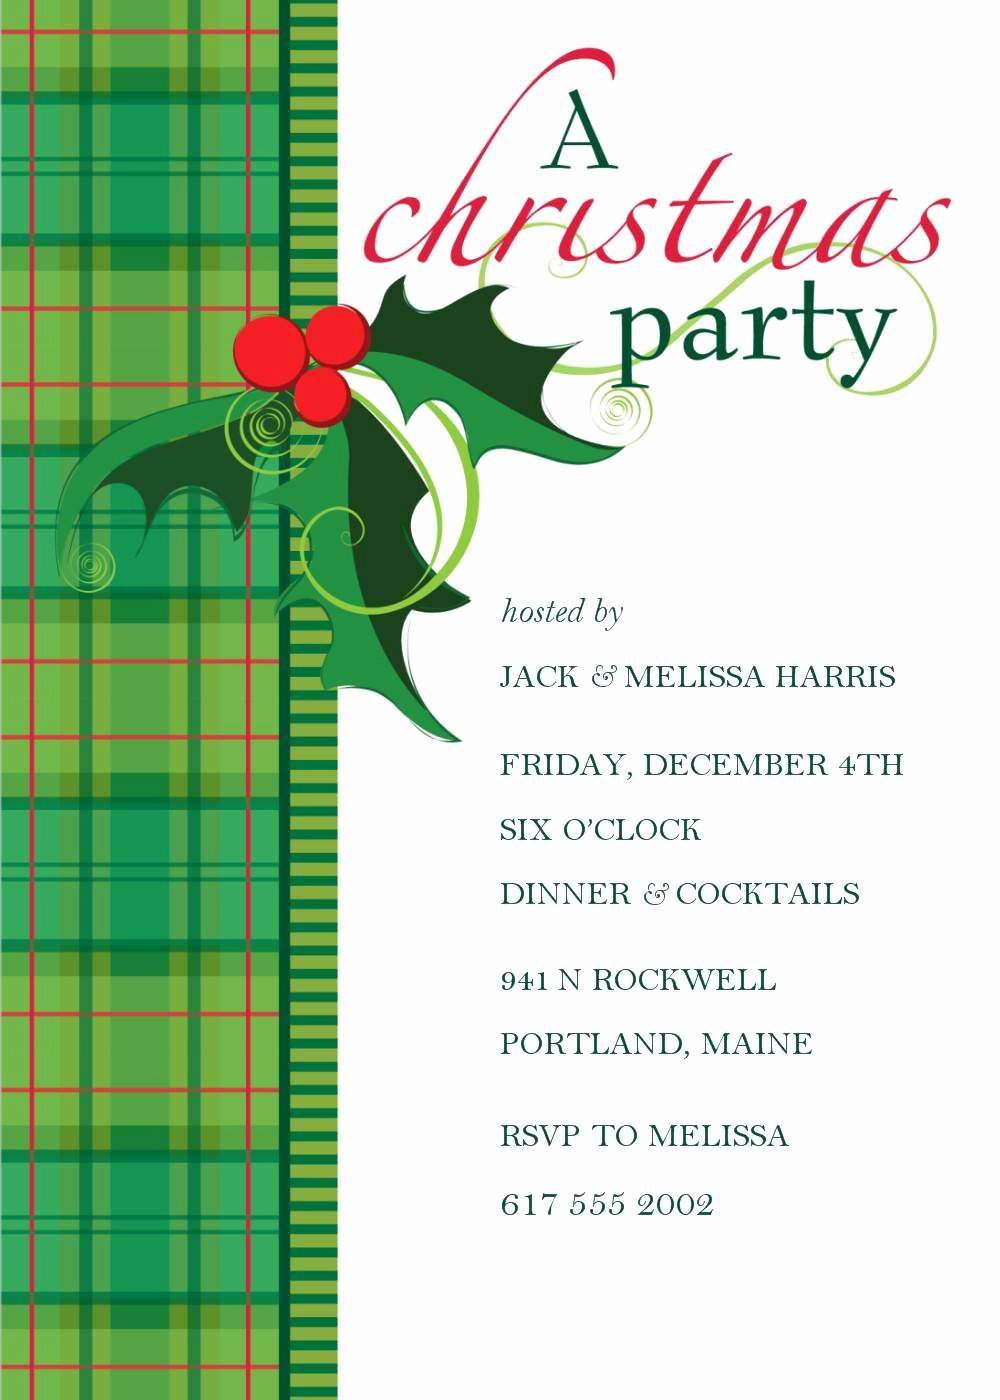 Holiday Party Invite Template Elegant Christmas Invitation Download Templates Free